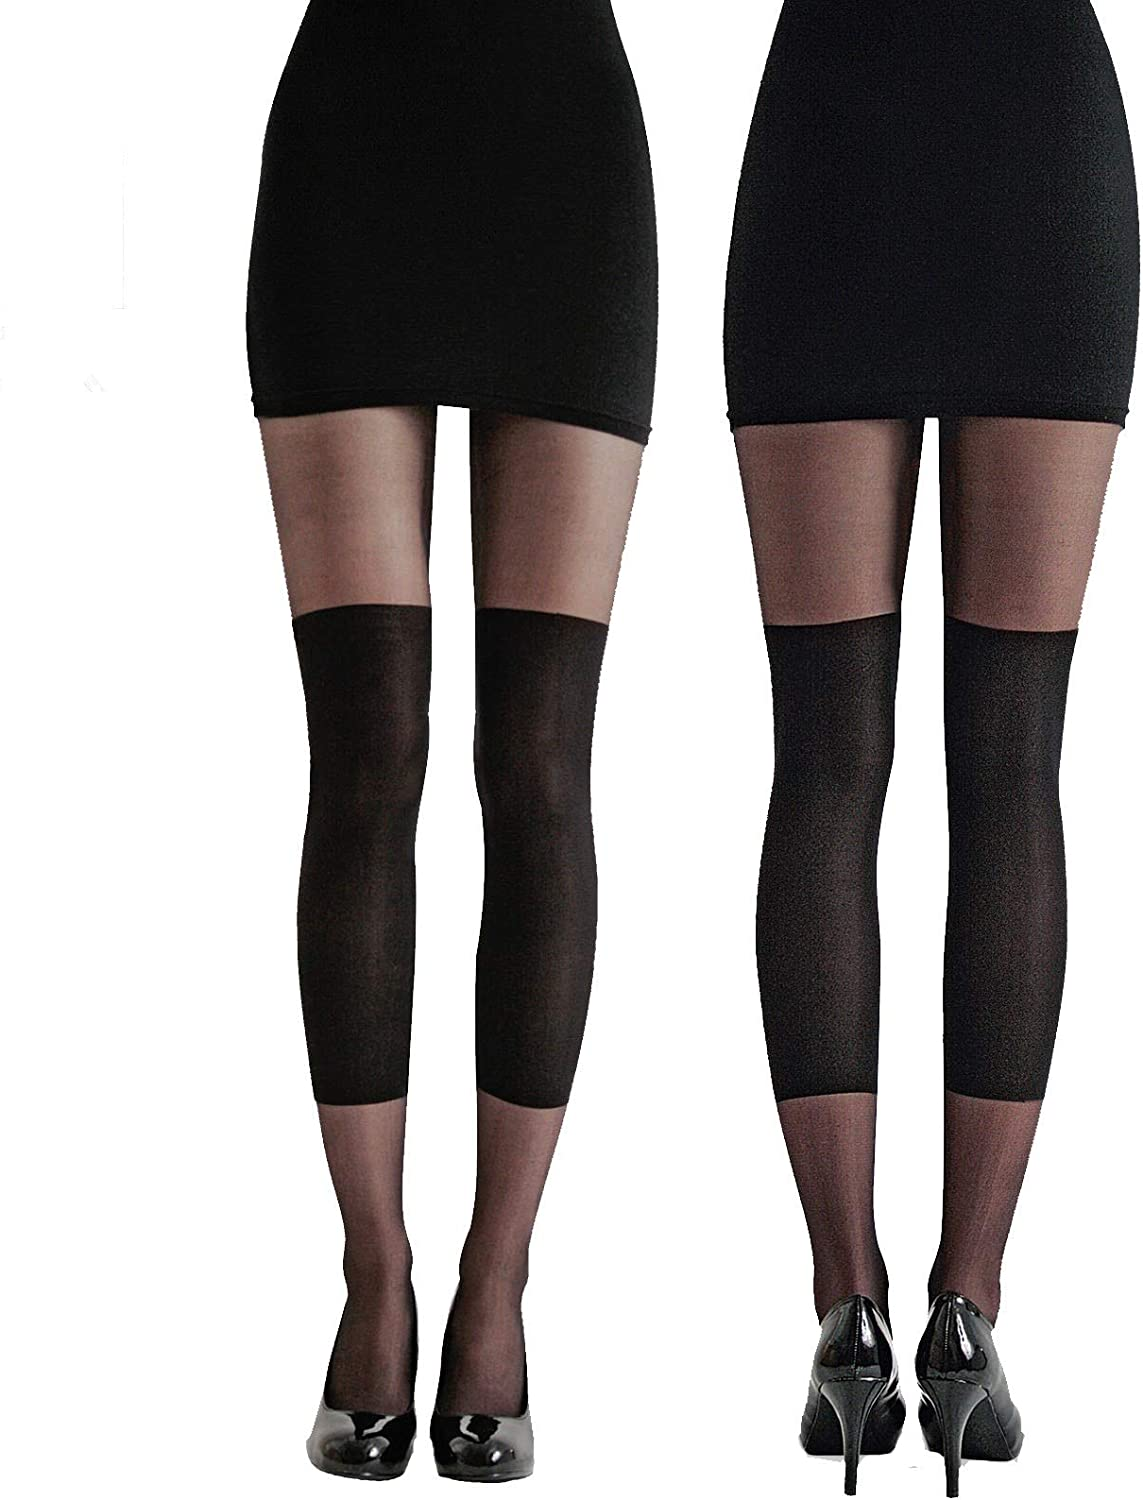 Hot Sox Dream Collection Opaque Sheer Block Tights